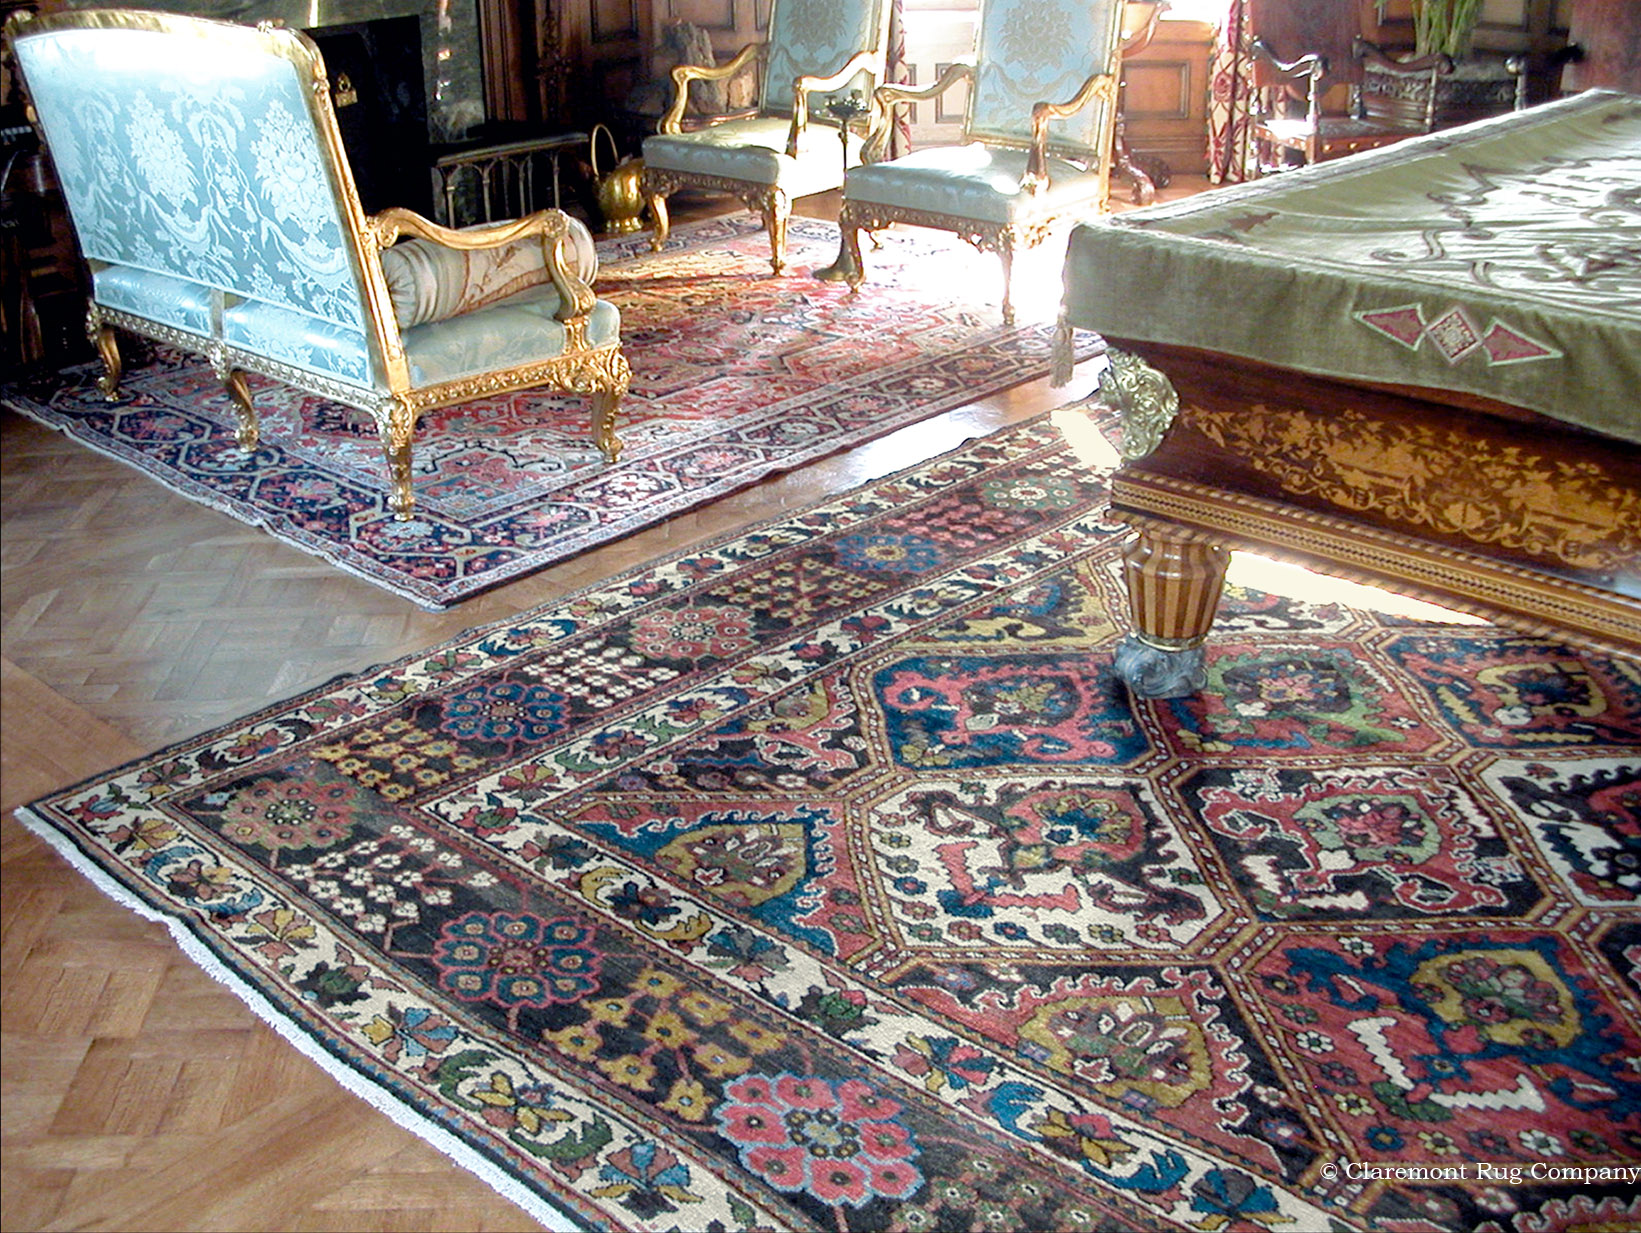 Persian Bakhtiari Rug in Billards Room